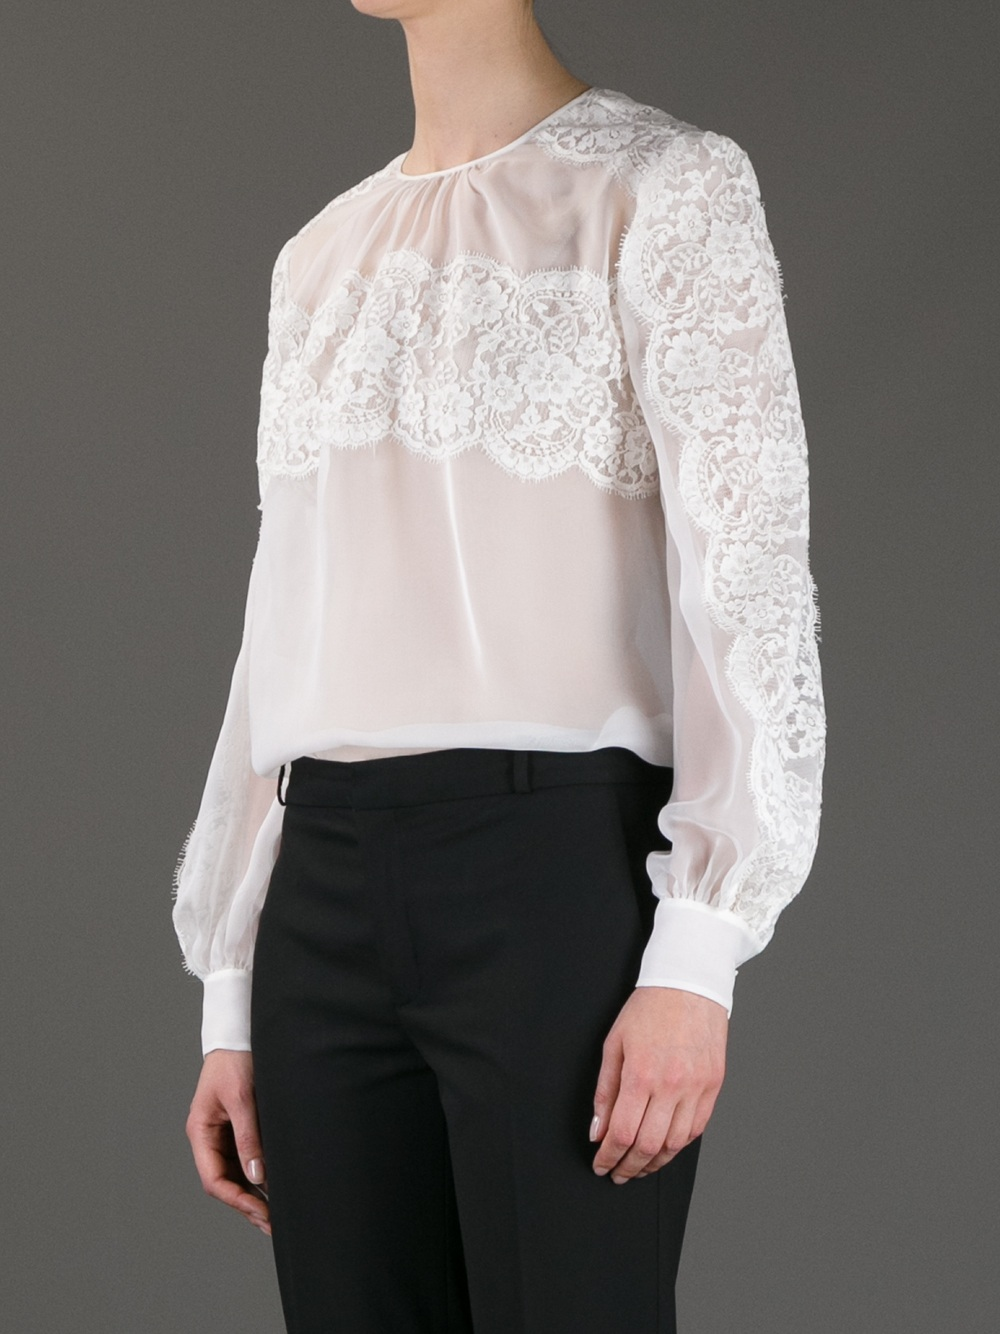 Buy Cheap Pay With Visa Valentino Lace Button-Up Top New Arrival Free Shipping Store Ebay Sale Online f2LQXhwKH